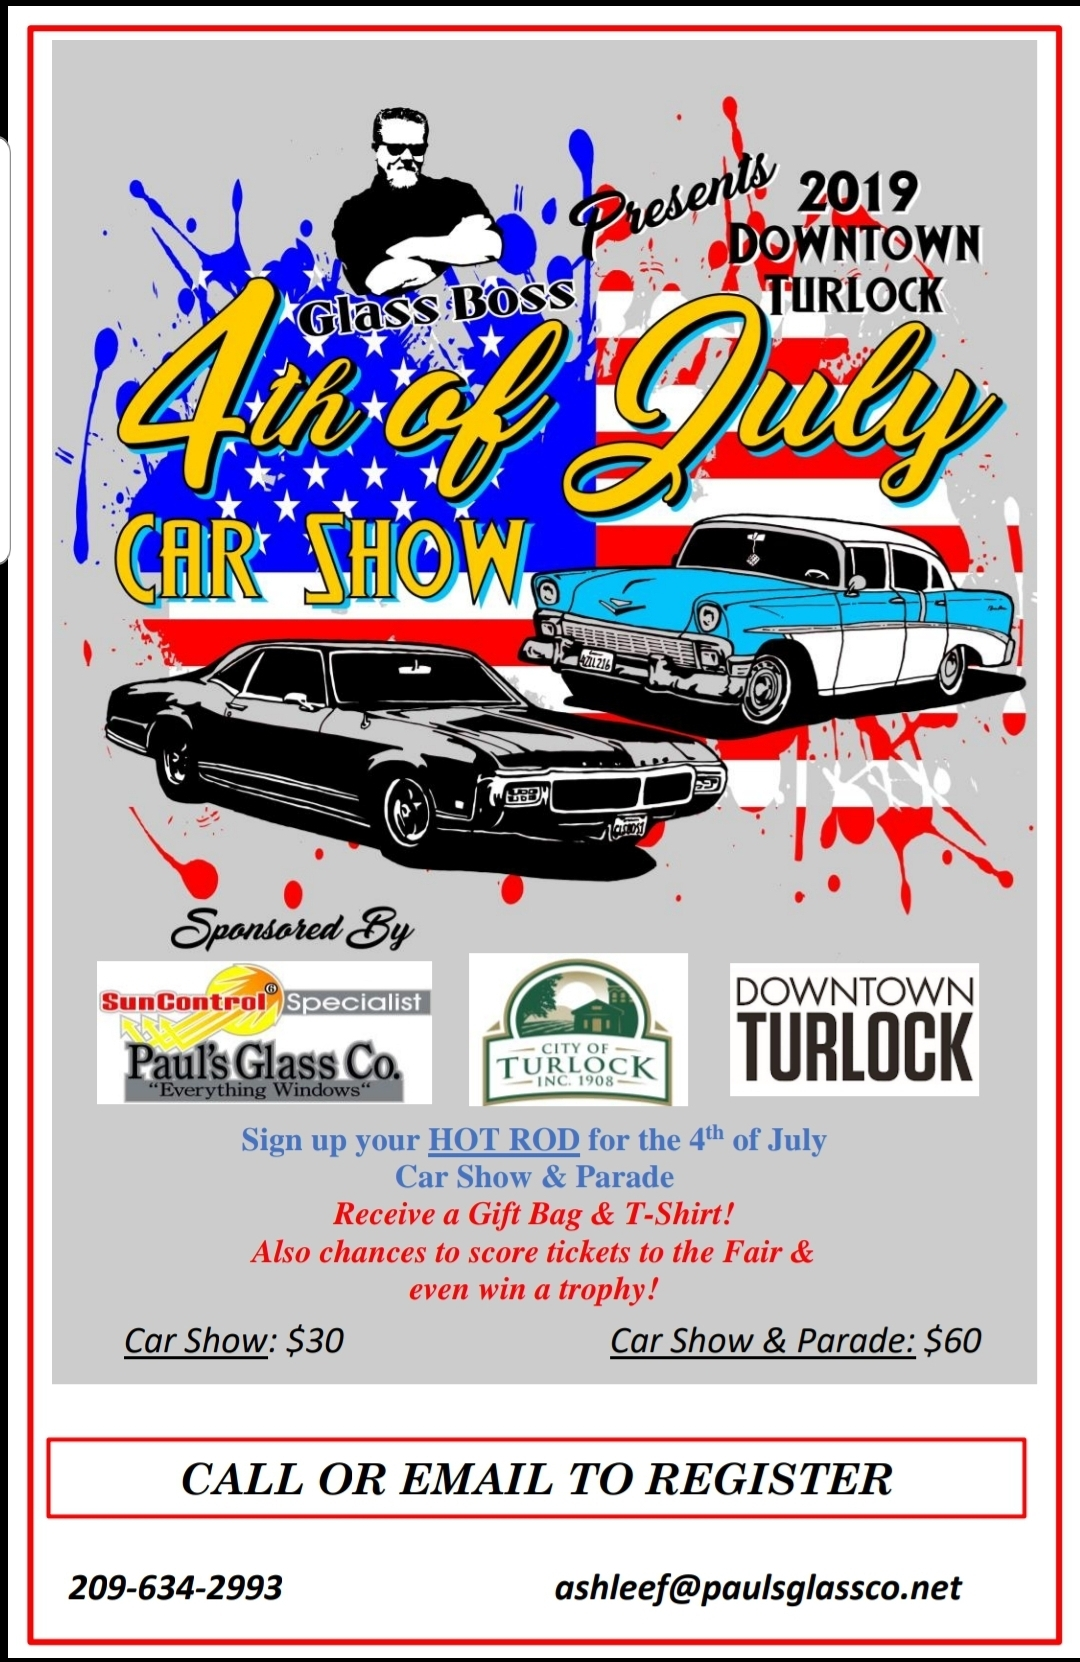 Turlock Christmas Parade 2019 2019 Annual 4th of July Parade and Car Show — Downtown Turlock